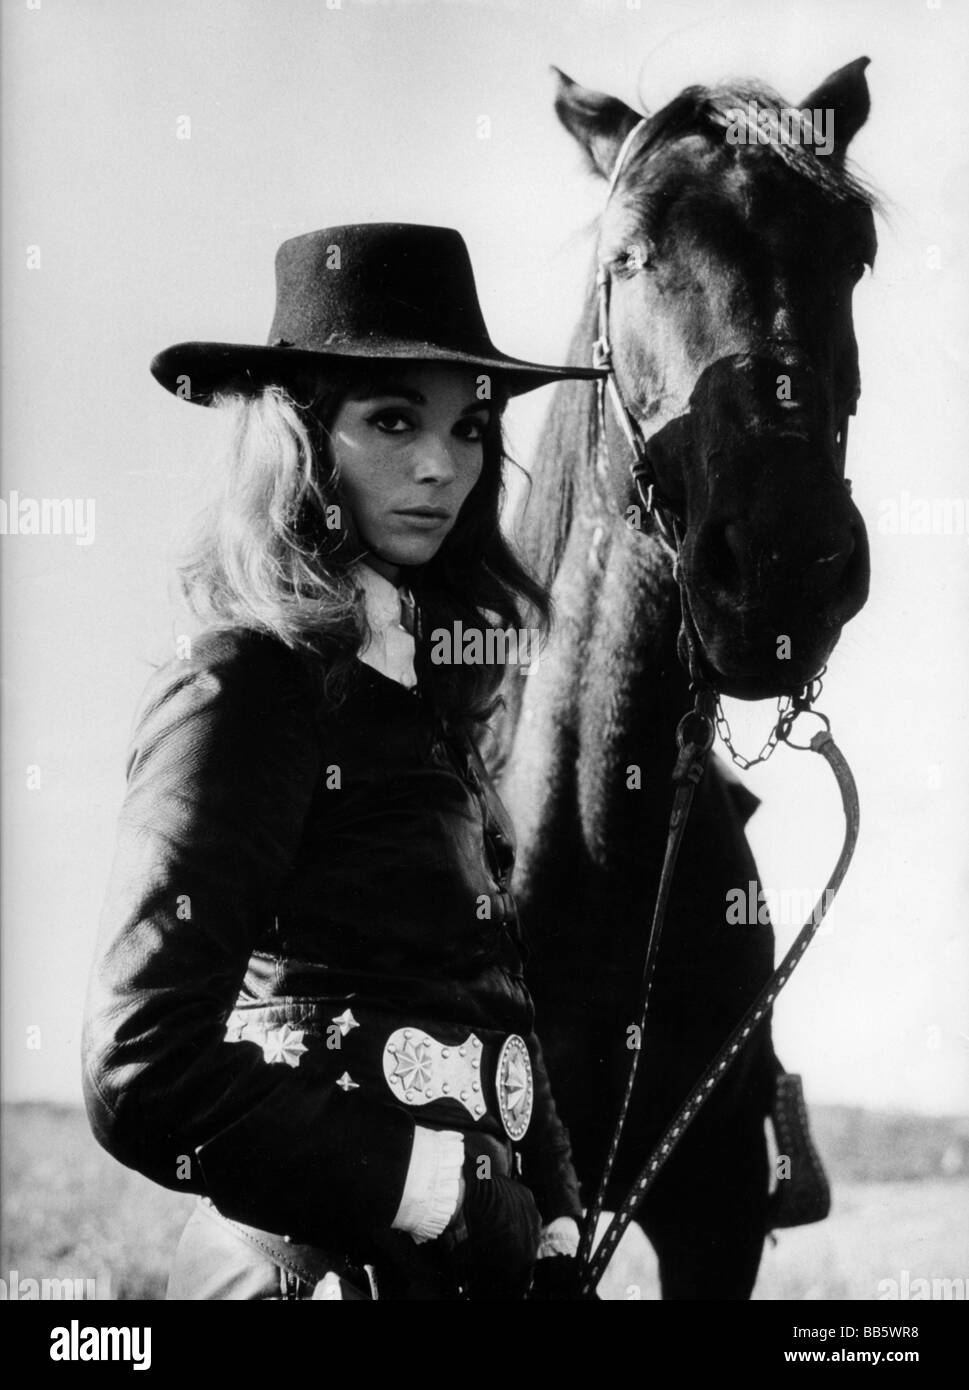 Martinelli, Elsa * 13.1.1932, Italian actress, half length with horse, 1950s, Additional-Rights-Clearances-NA - Stock Image